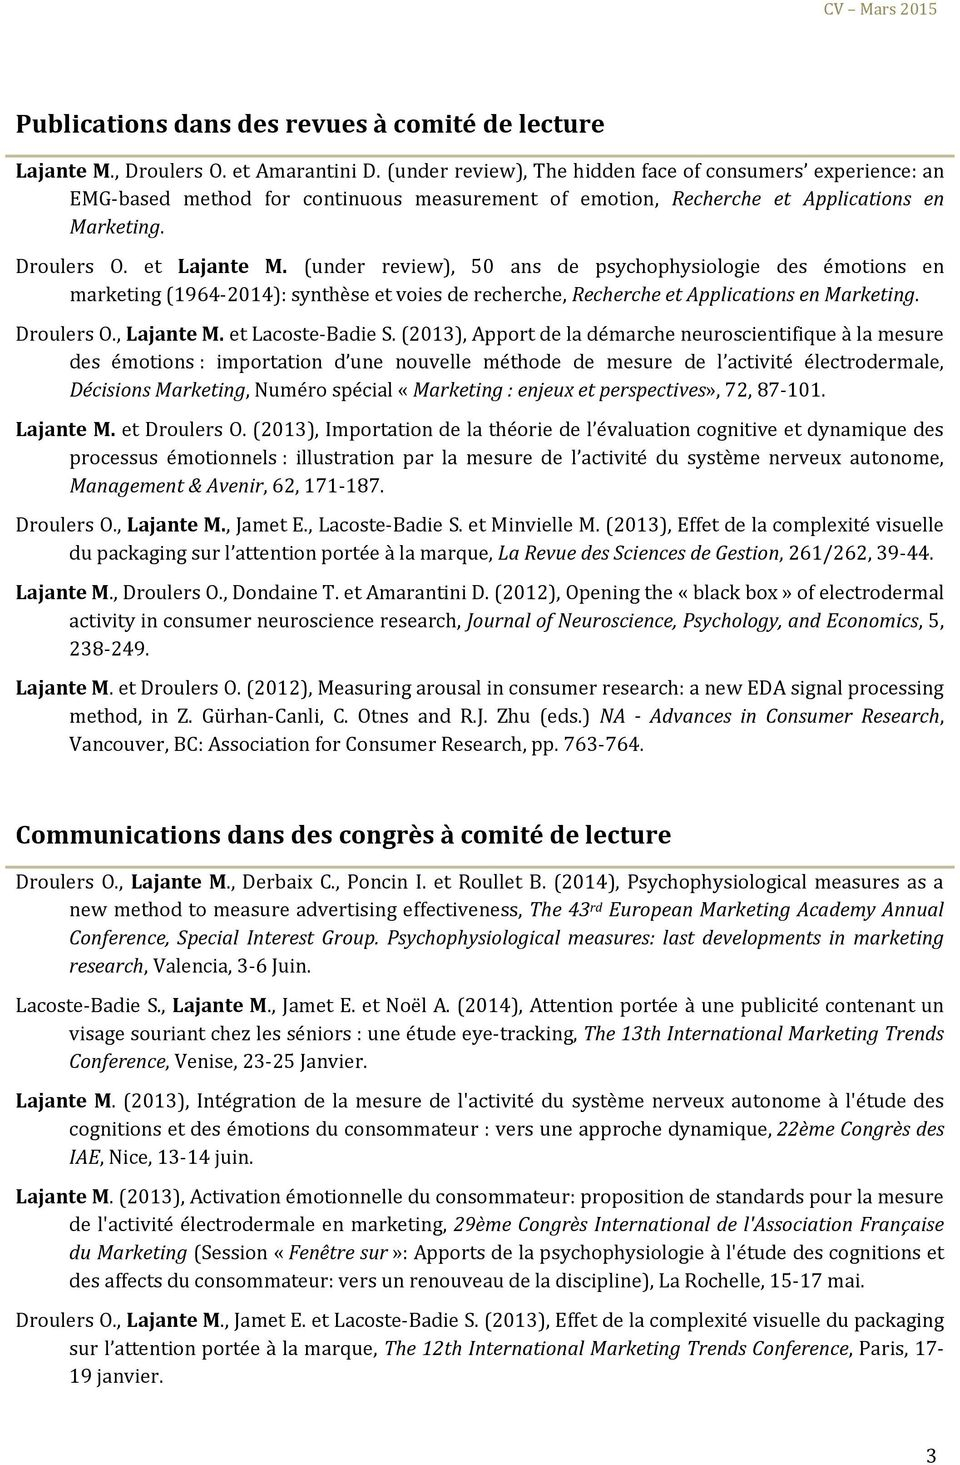 (under review), 50 ans de psychophysiologie des émotions en marketing (1964-2014): synthèse et voies de recherche, Recherche et Applications en Marketing. Droulers O., Lajante M. et Lacoste-Badie S.